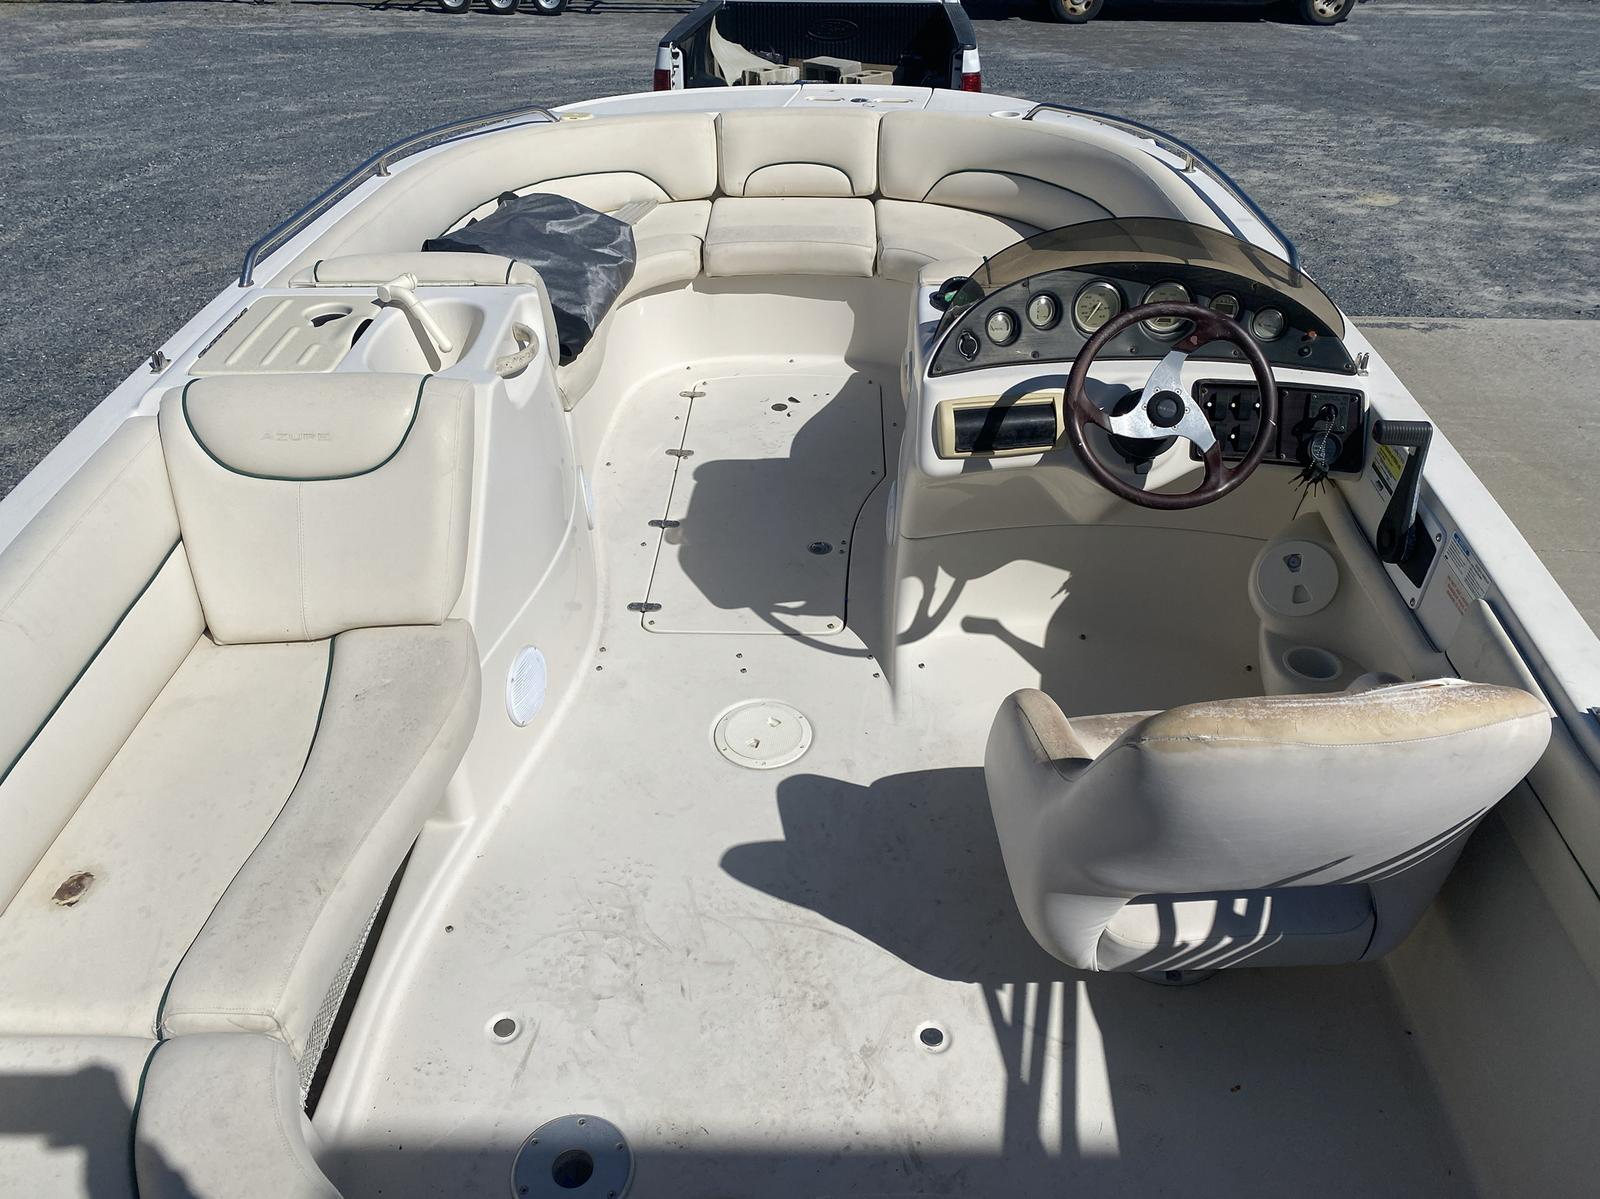 2005 Azure boat for sale, model of the boat is AZ210 & Image # 4 of 13